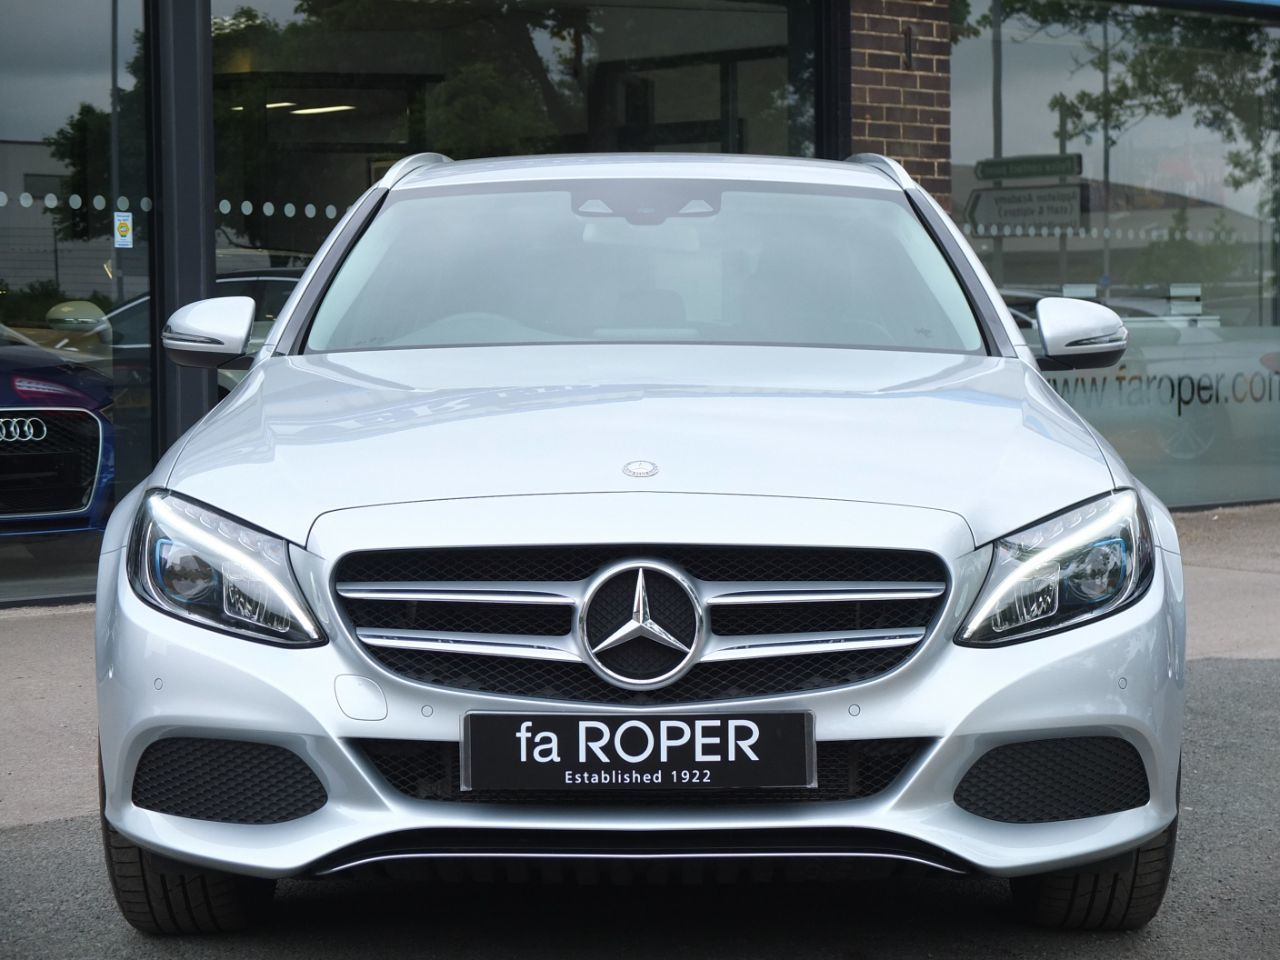 Mercedes-Benz C Class 2.0 C350e Sport Estate PHEV Auto Estate Petrol / Electric Hybrid Iridium Silver Metallic